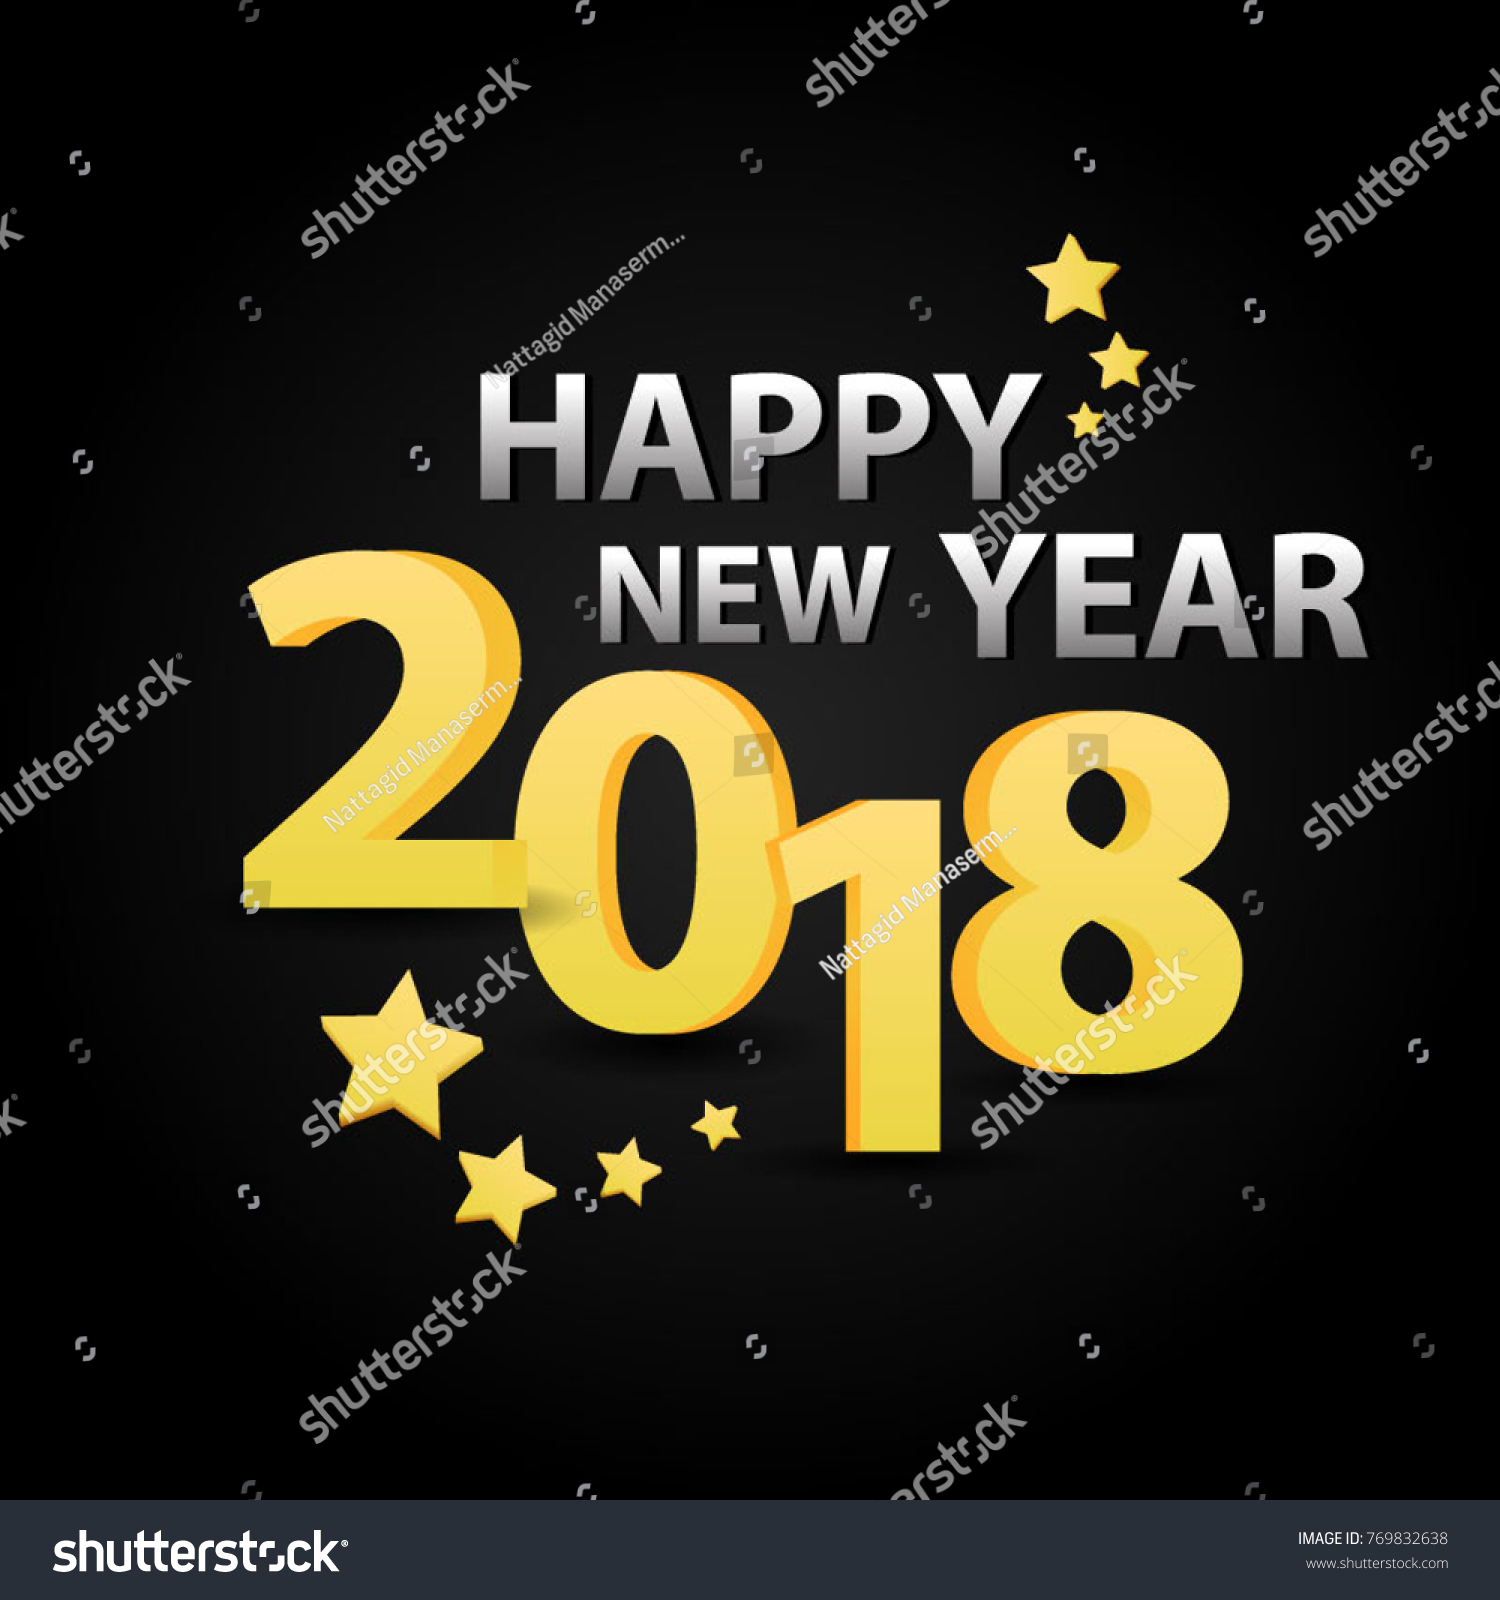 happy new year 2018 background golden and silver on black design template of a